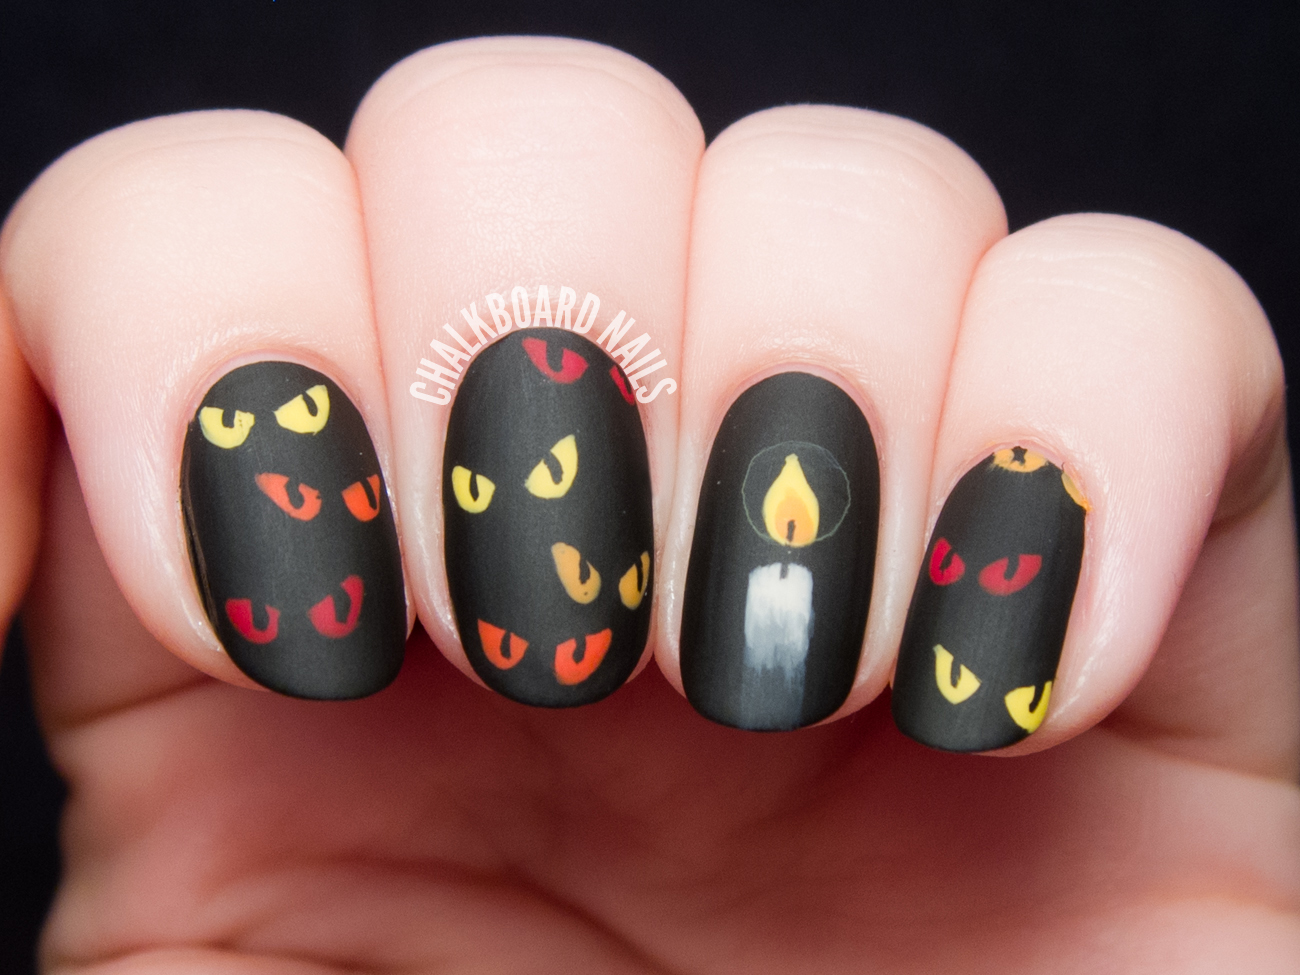 Are You Afraid of the Dark? - Spooky Eyes Nail Art ...